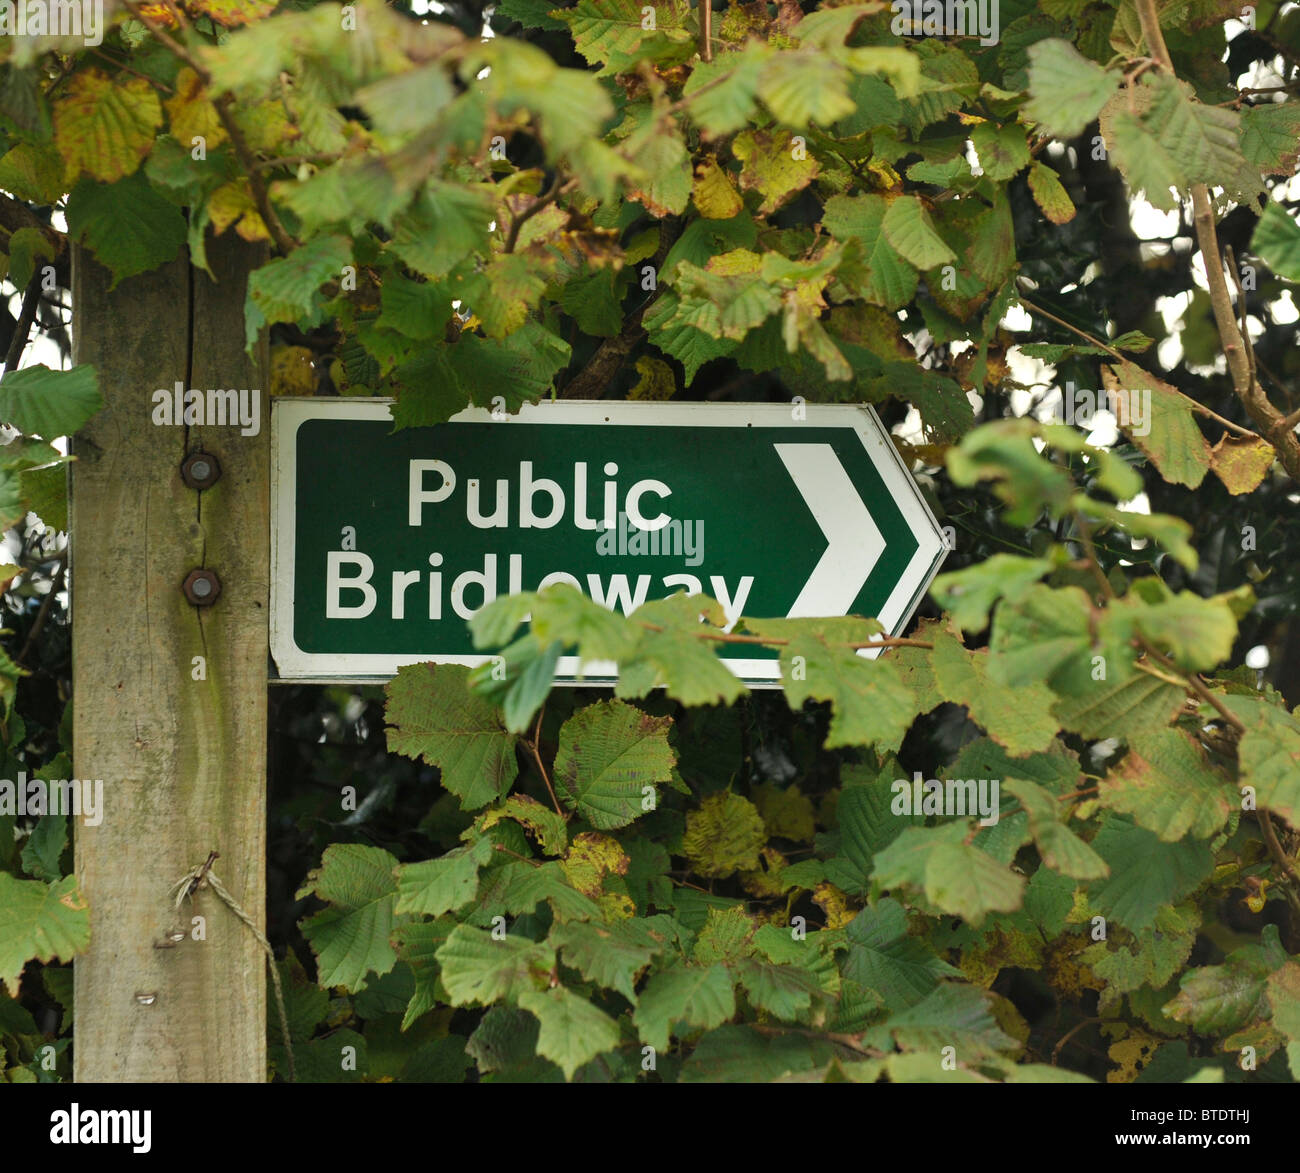 public bridleway sign hidden in foliage - Stock Image